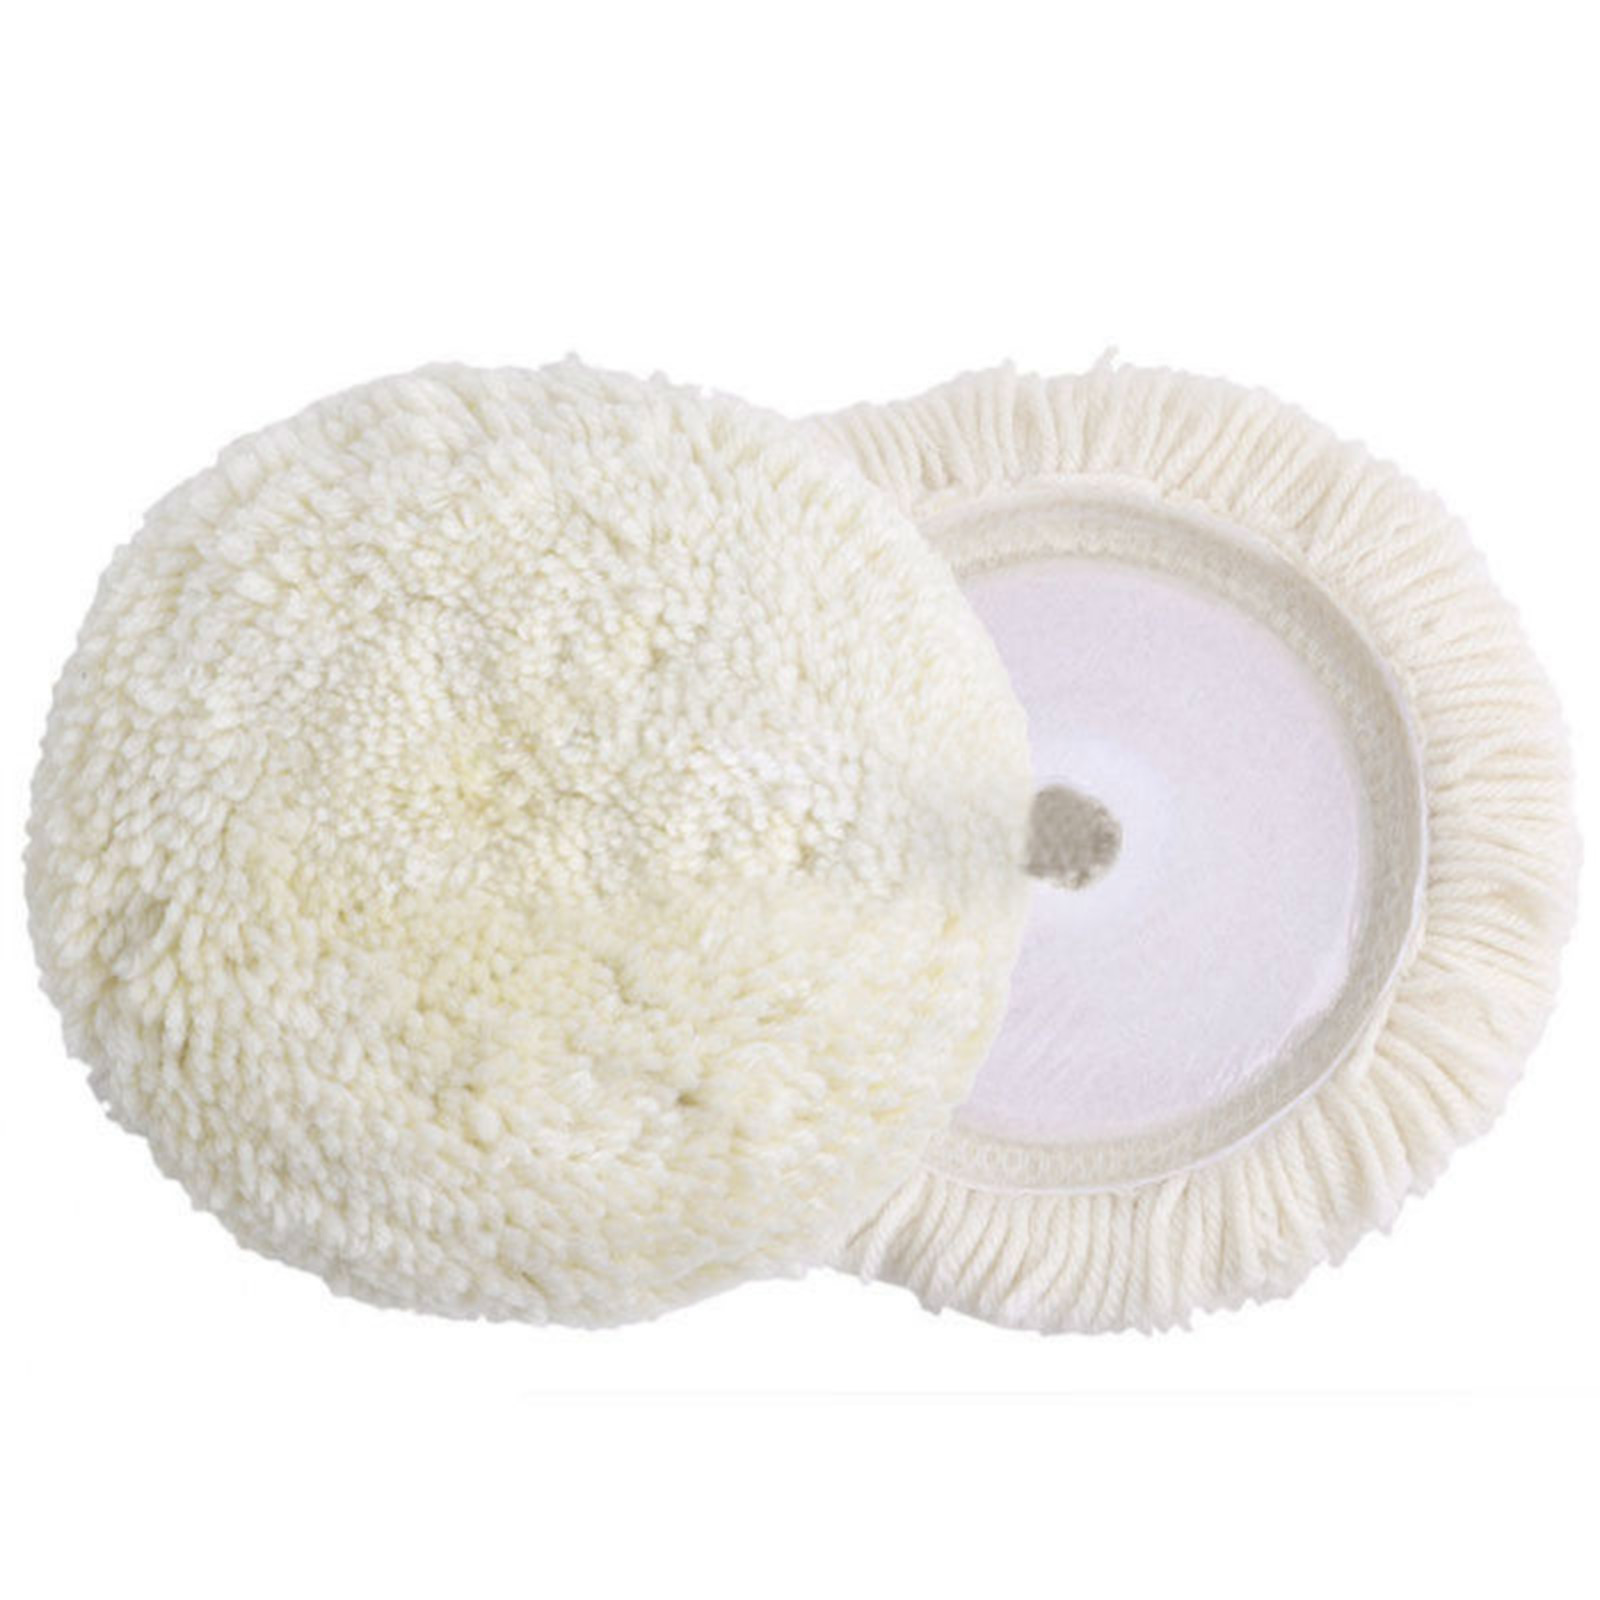 1pc Cleaning Tools 7 180mm Round Wool Polishing Buffing Detailing Pad High Quality For Car Polisher Buffer